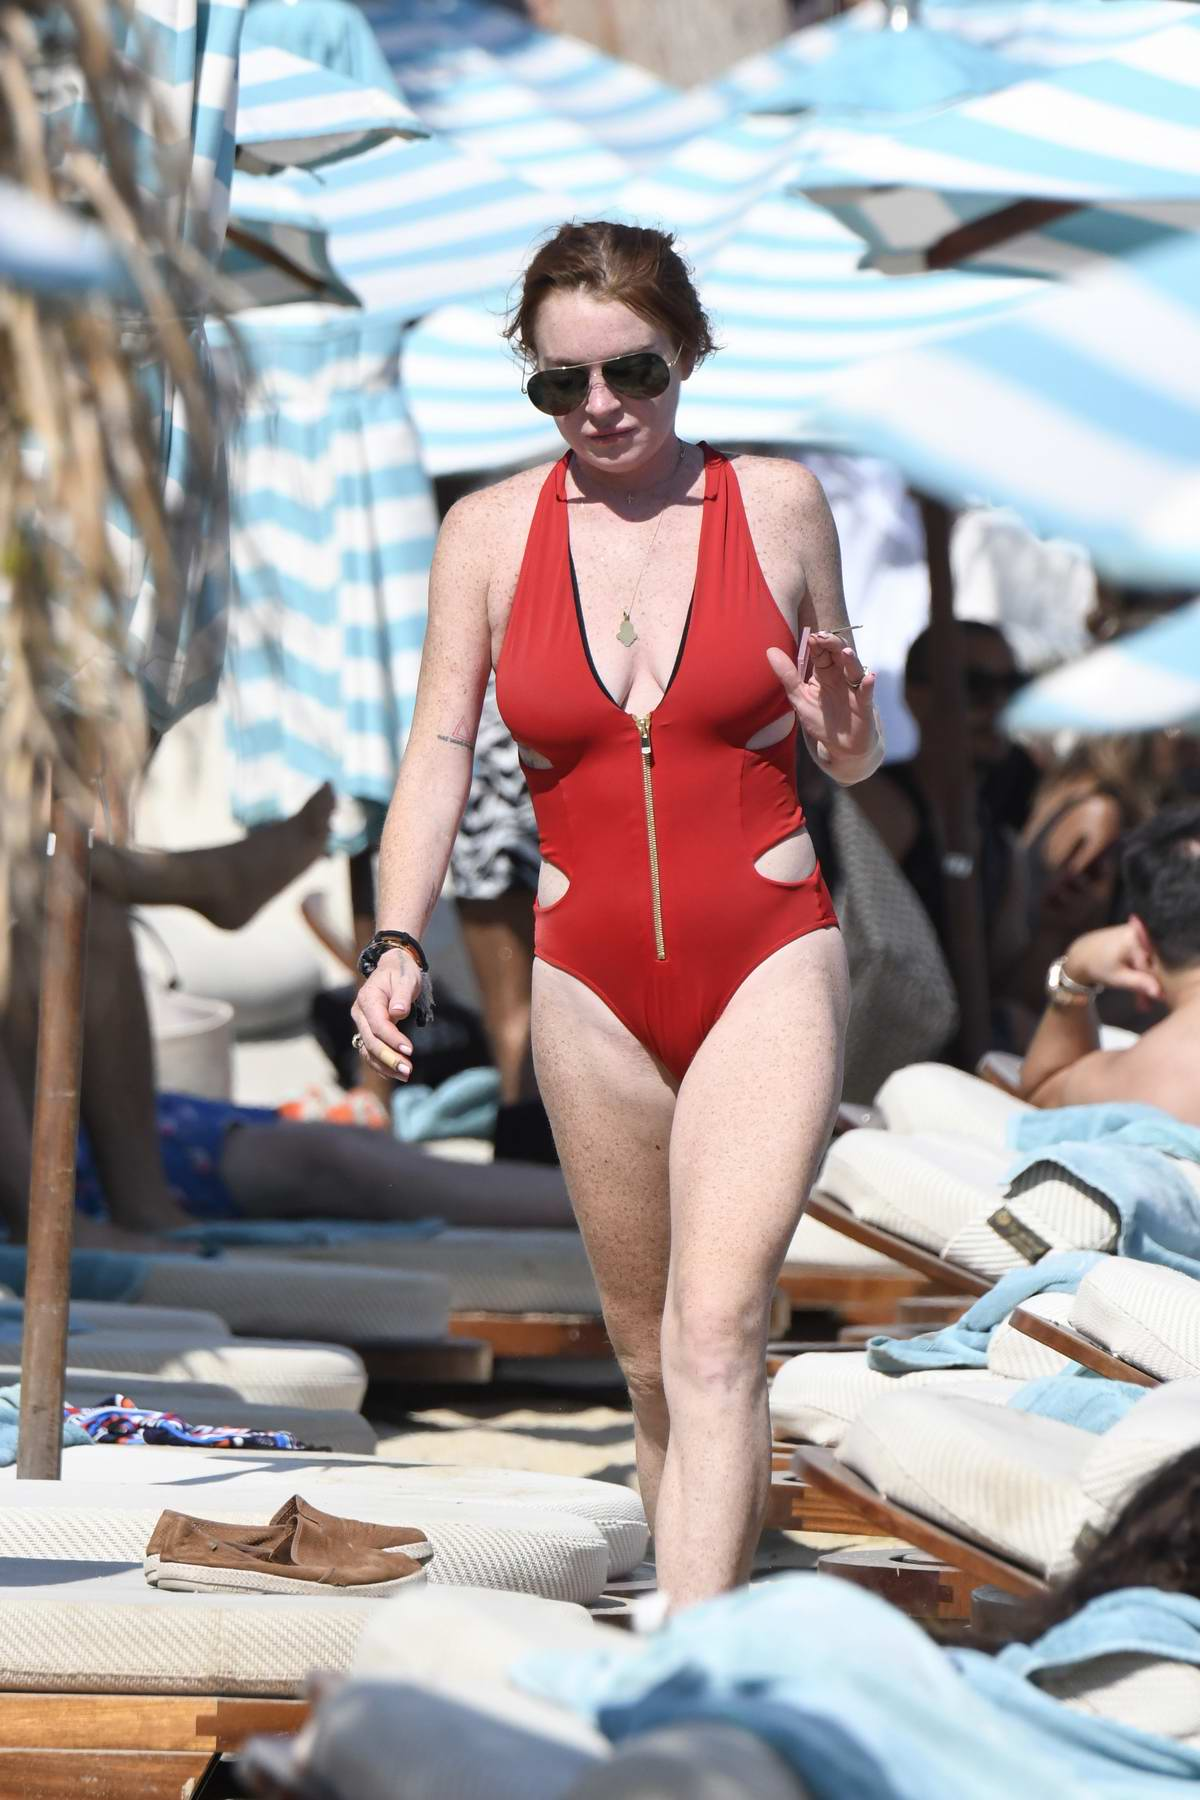 Lindsay Lohan in red swimsuit relaxing on the beach in Mykonos, Greece